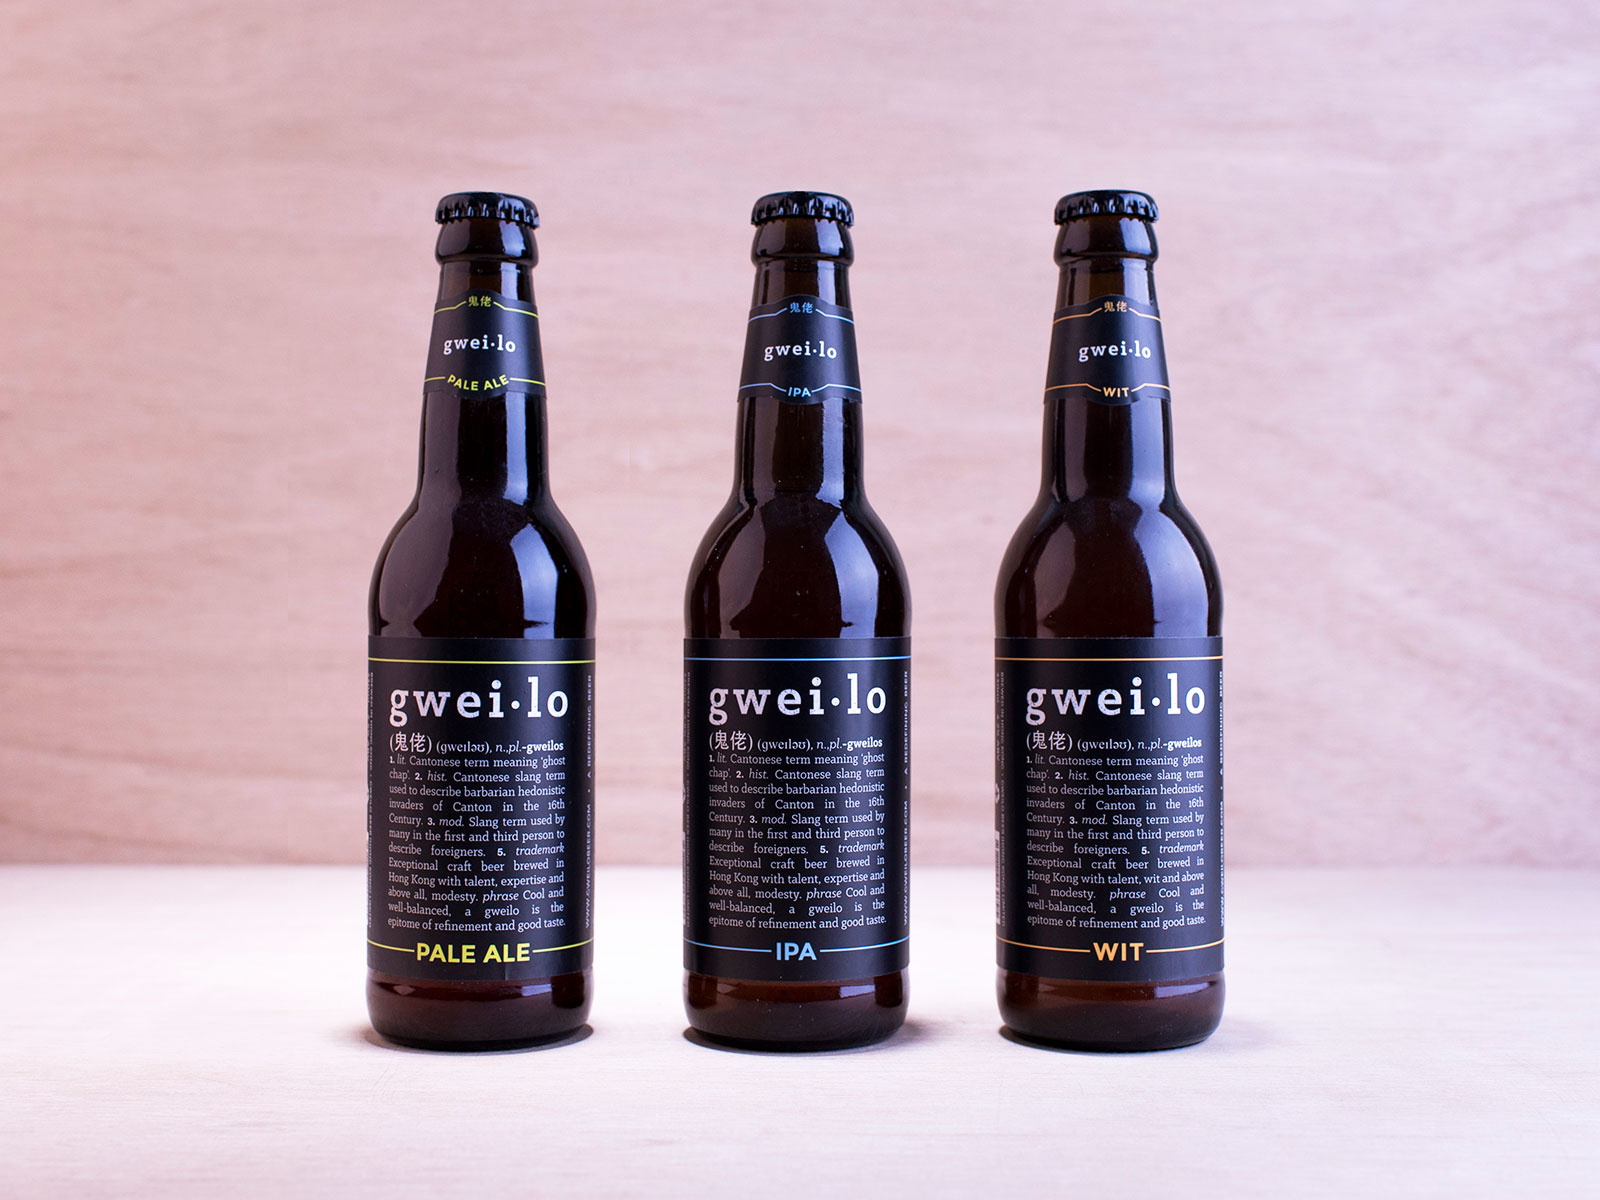 hong kong's gweilo beer bottles